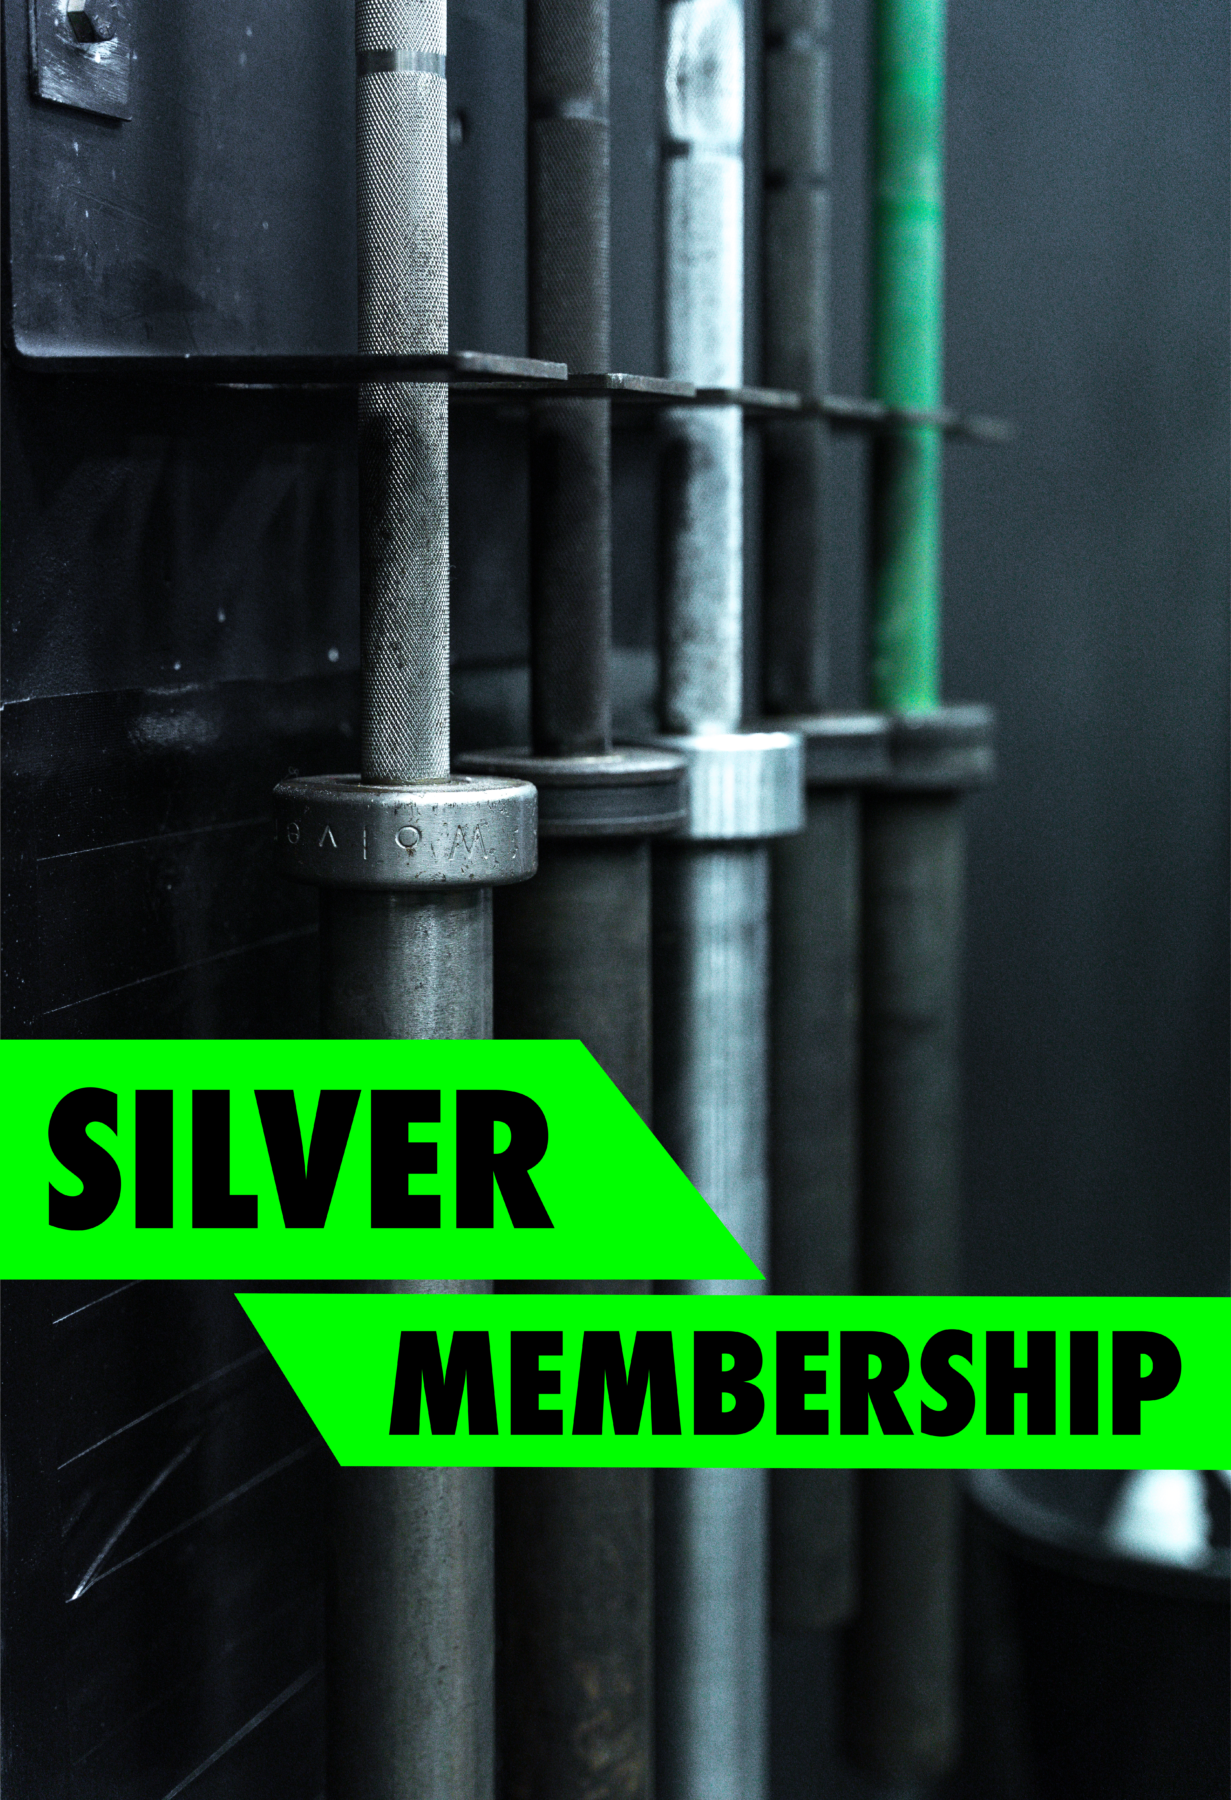 Step in to Silver